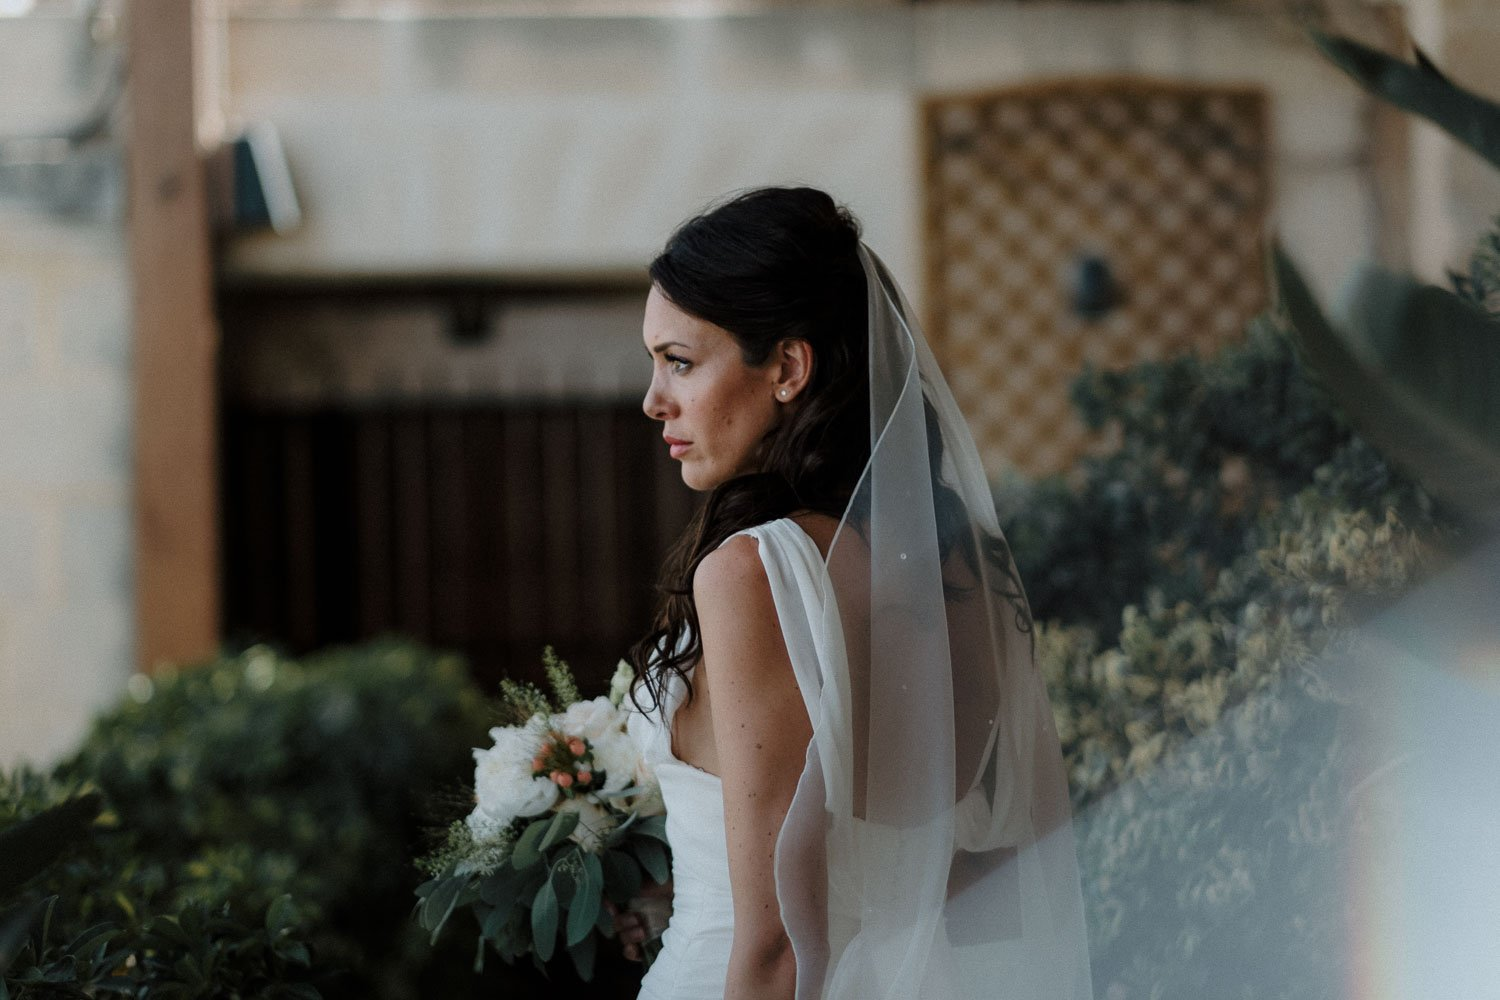 Malta Mdina Destination Wedding Photographer Villa Mdina LozzyRichard Stuart Dudleston Photography 38 1